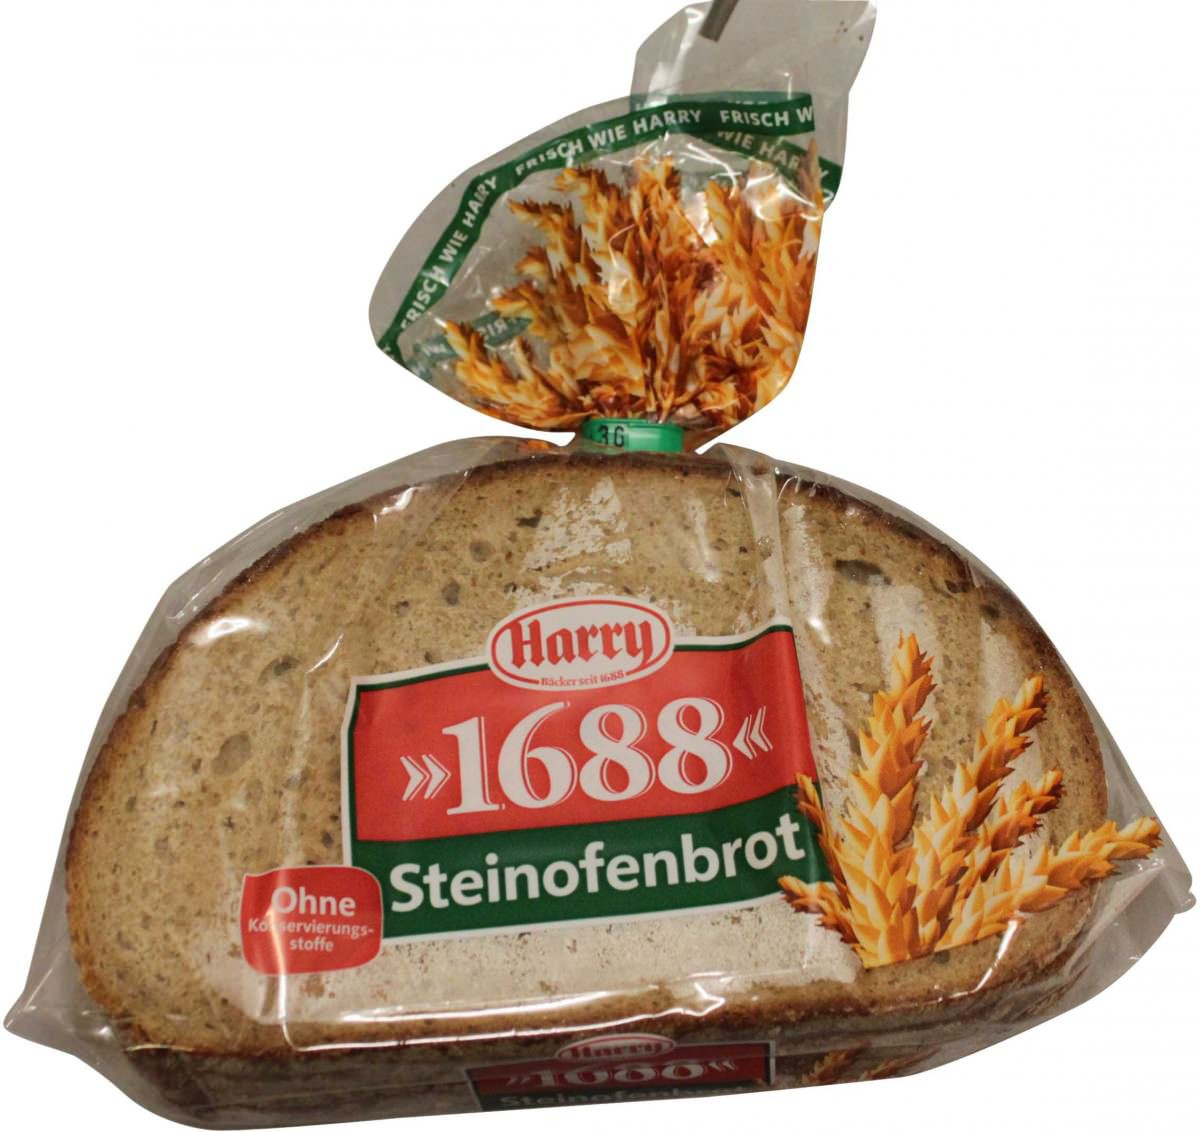 Harry Steinofenbrot